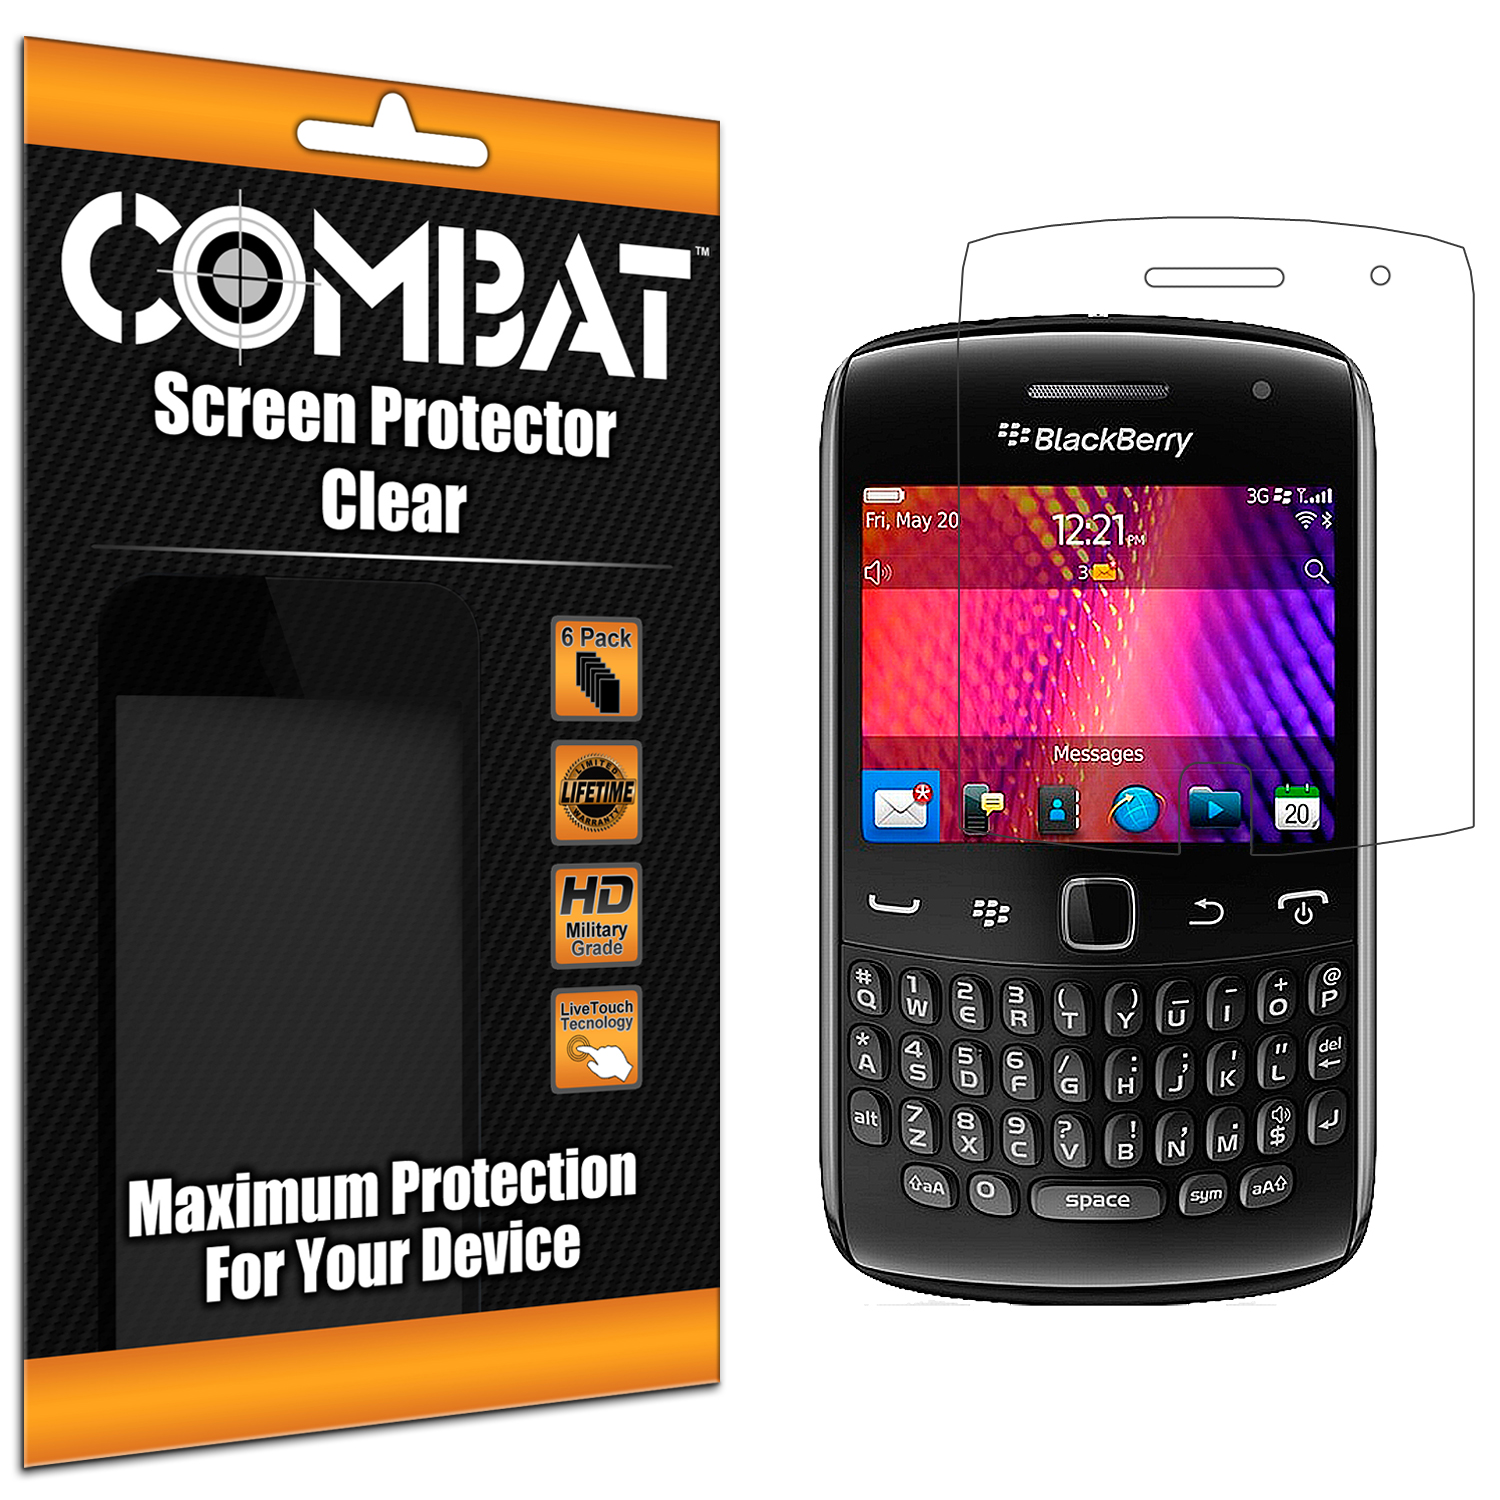 BlackBerry Curve 9350 9360 9370 Combat 6 Pack HD Clear Screen Protector